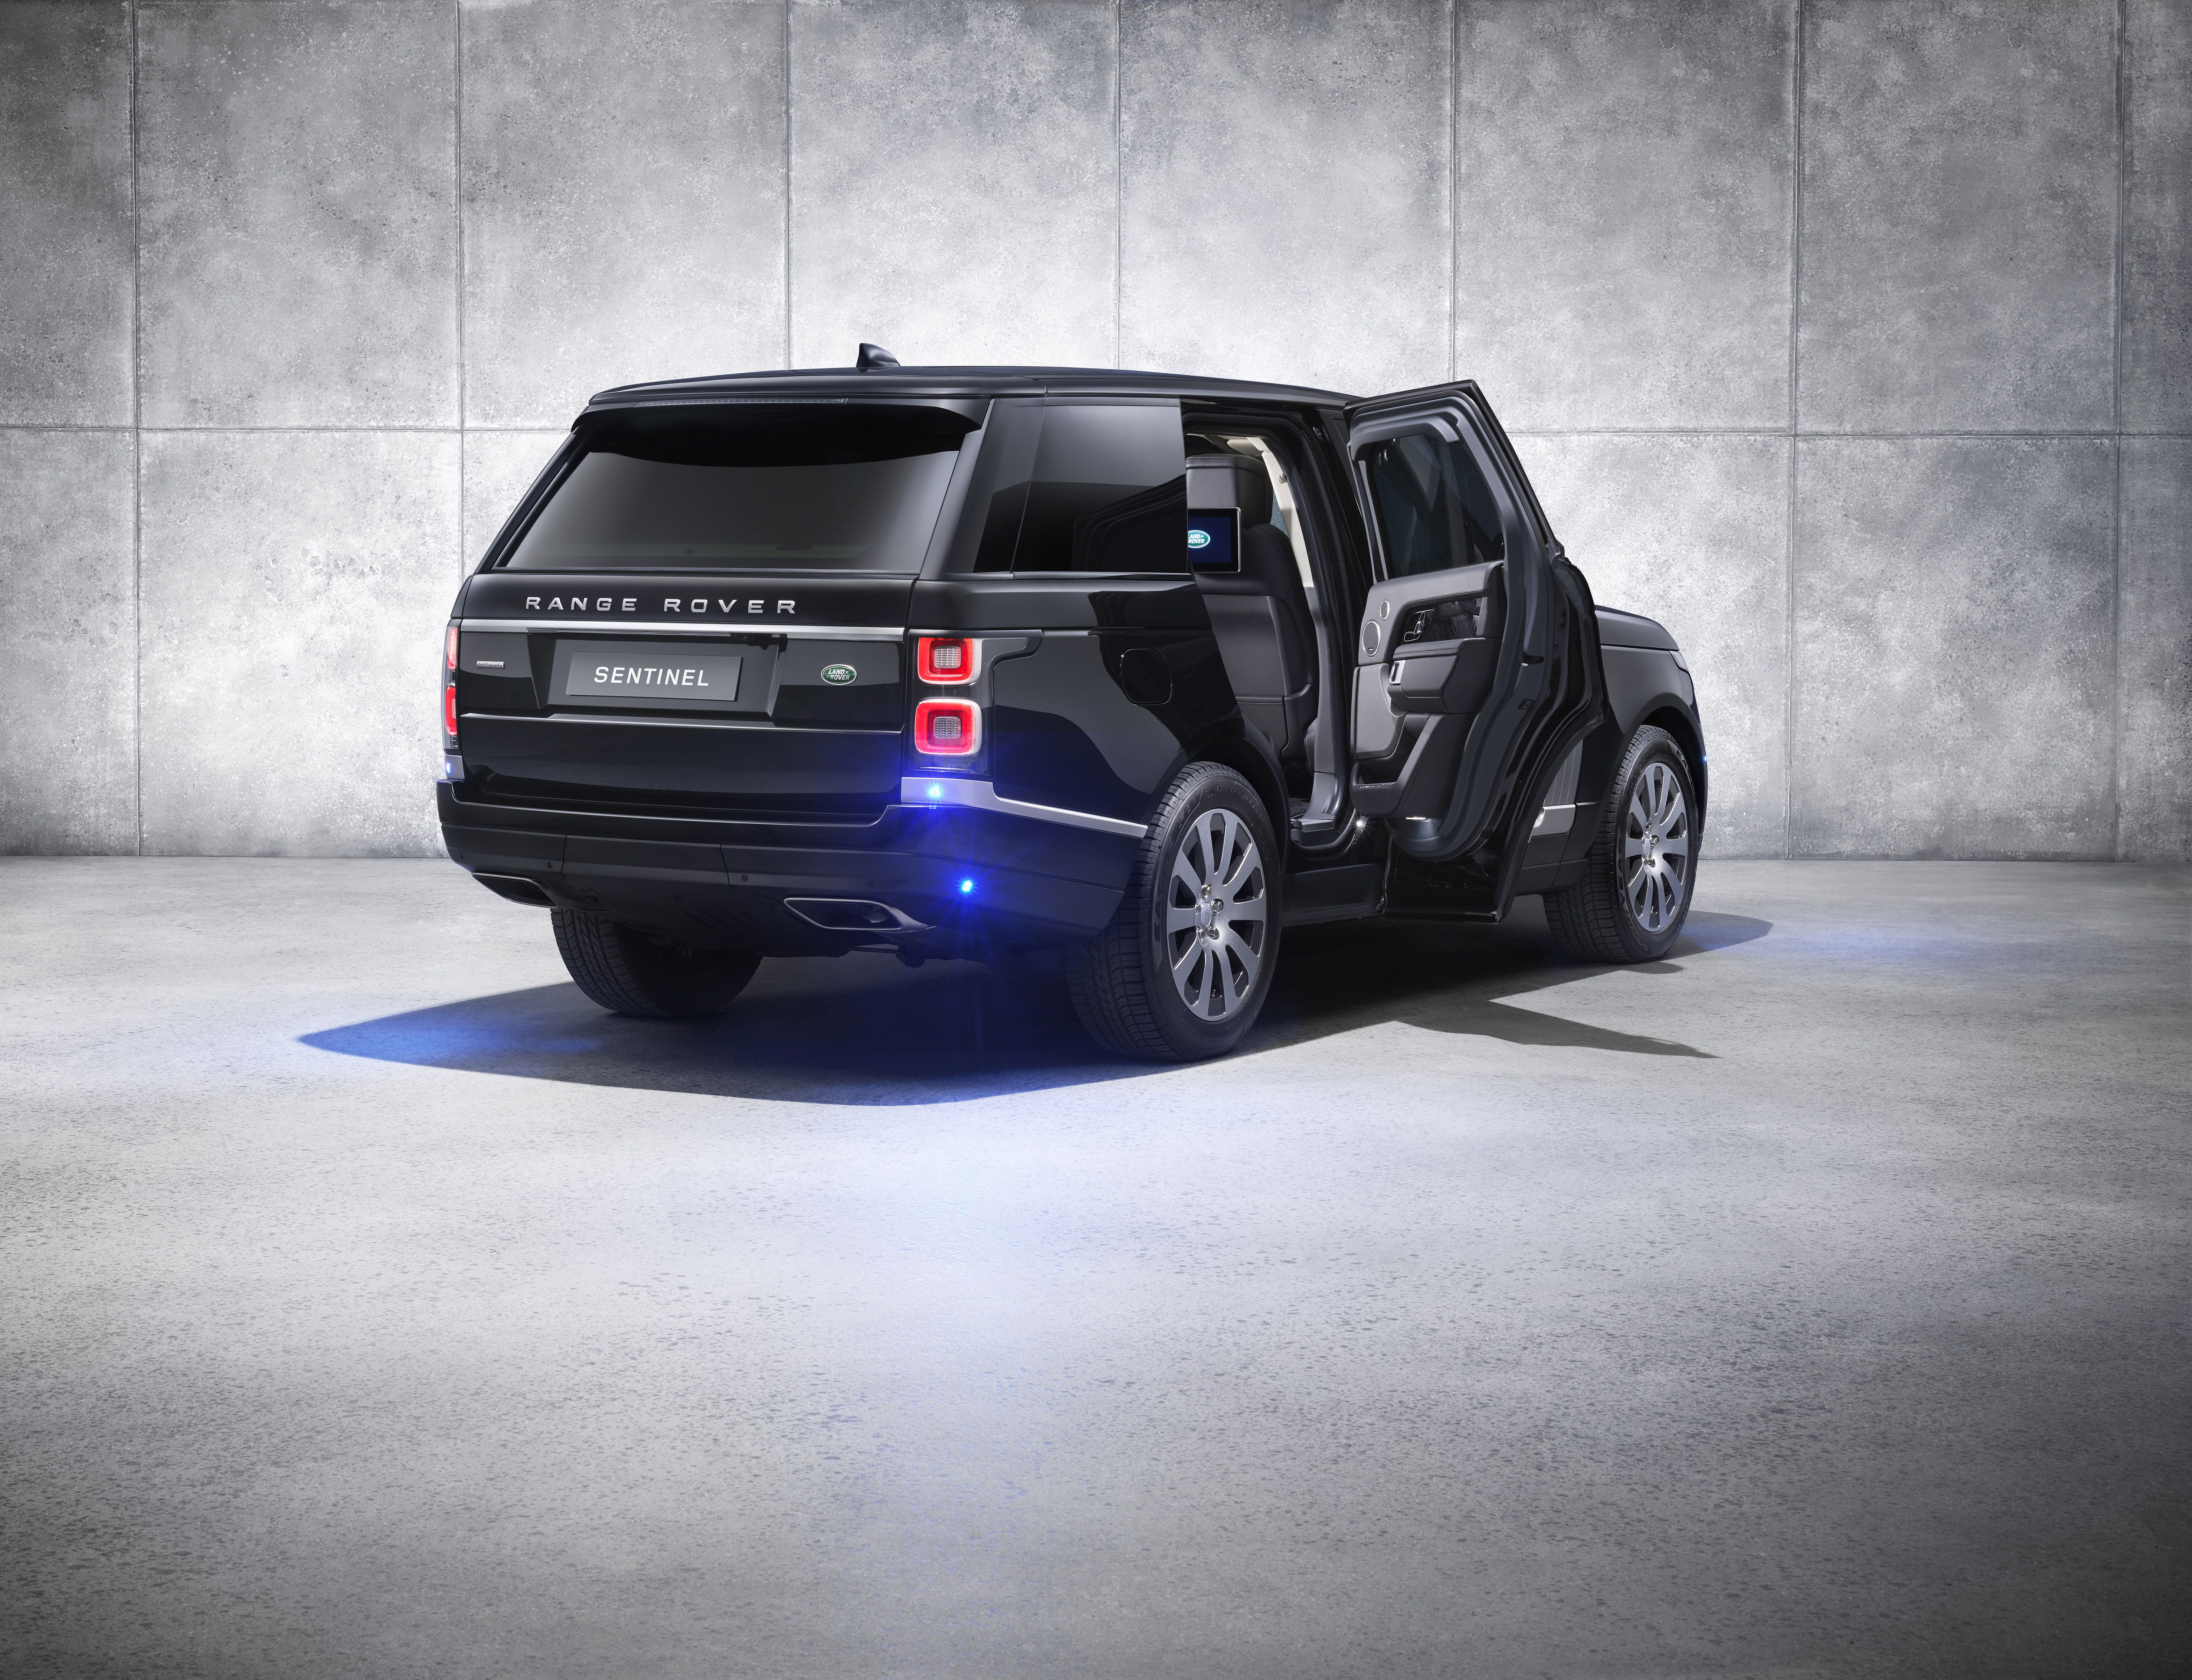 2019 Range Rover Sentinel 10 000 Pounds Of Armored Readiness